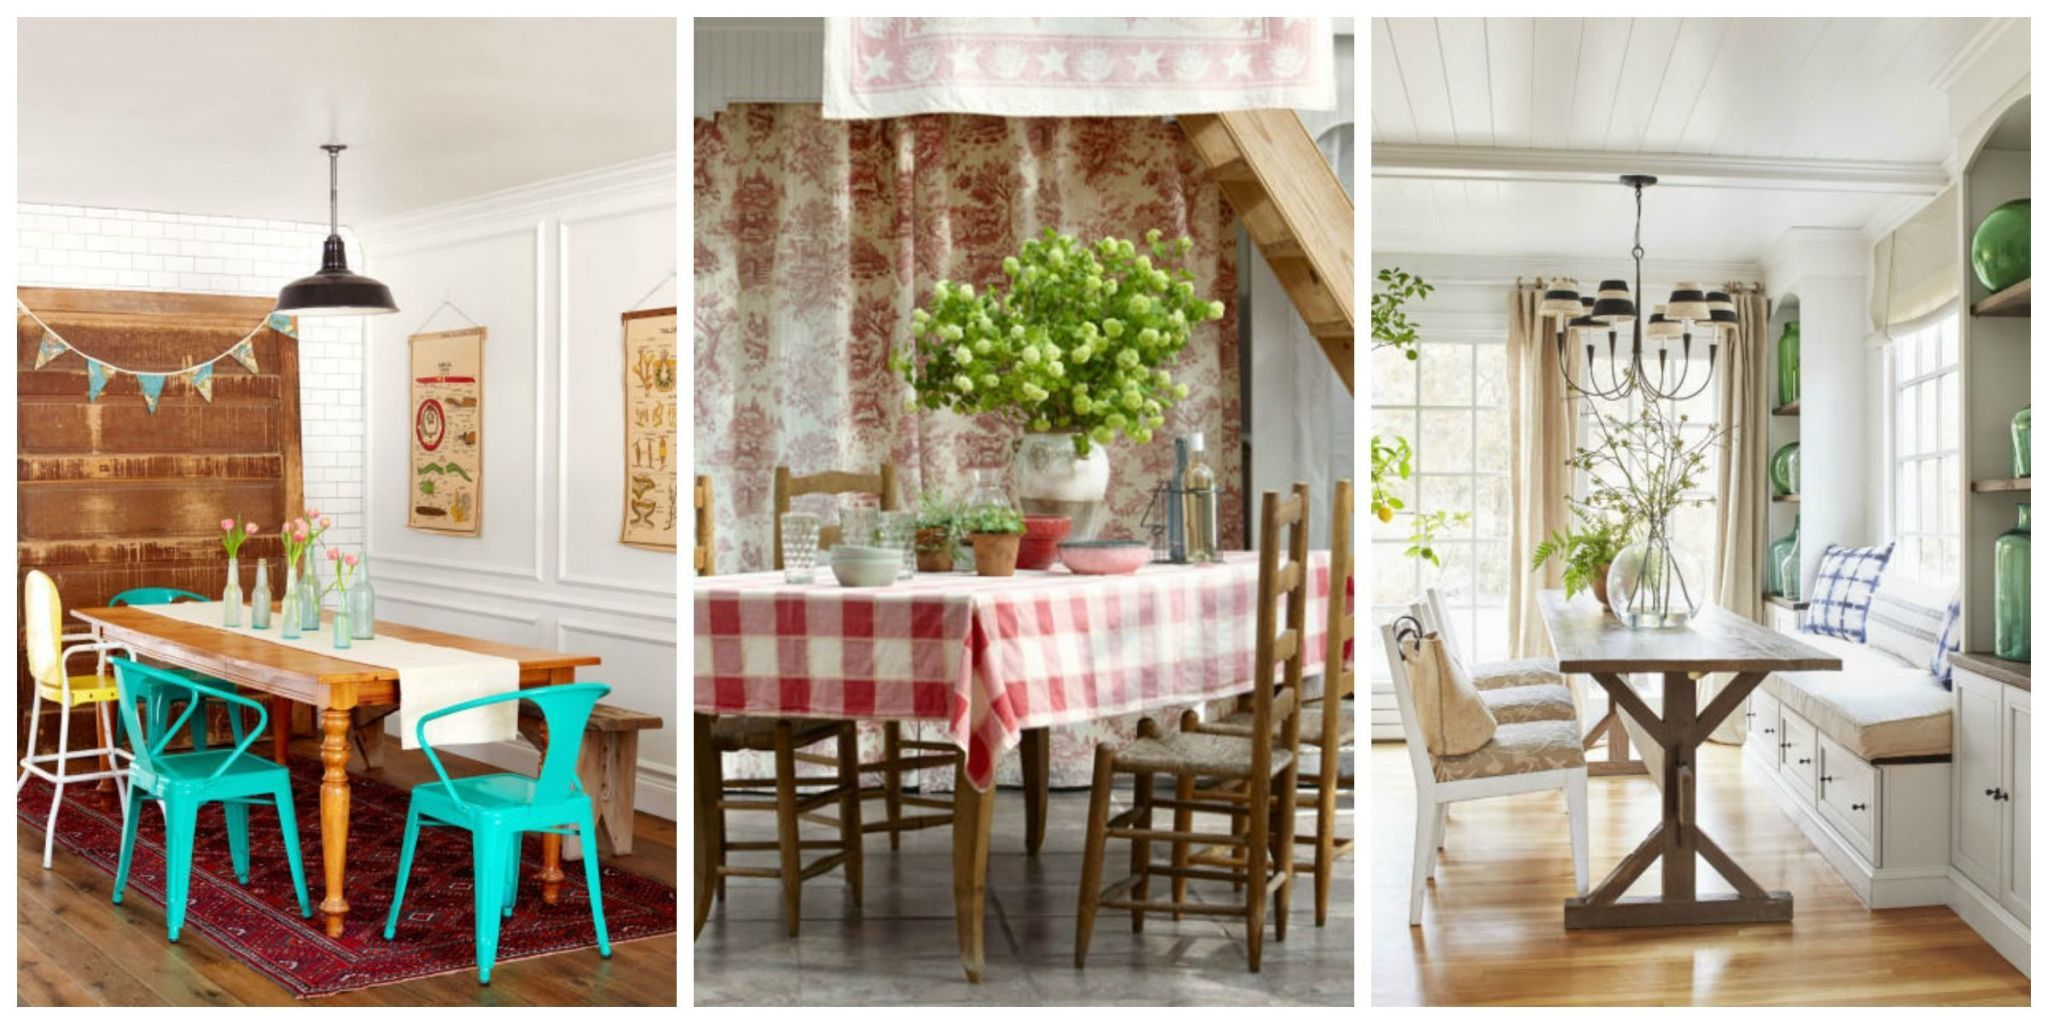 Superb From Floral Themes To Vintage Furniture, Our Dining Room Design Guide Will  Help You Transform Your Dining Space In No Time. Plus, Makeover Your  Kitchen, ...